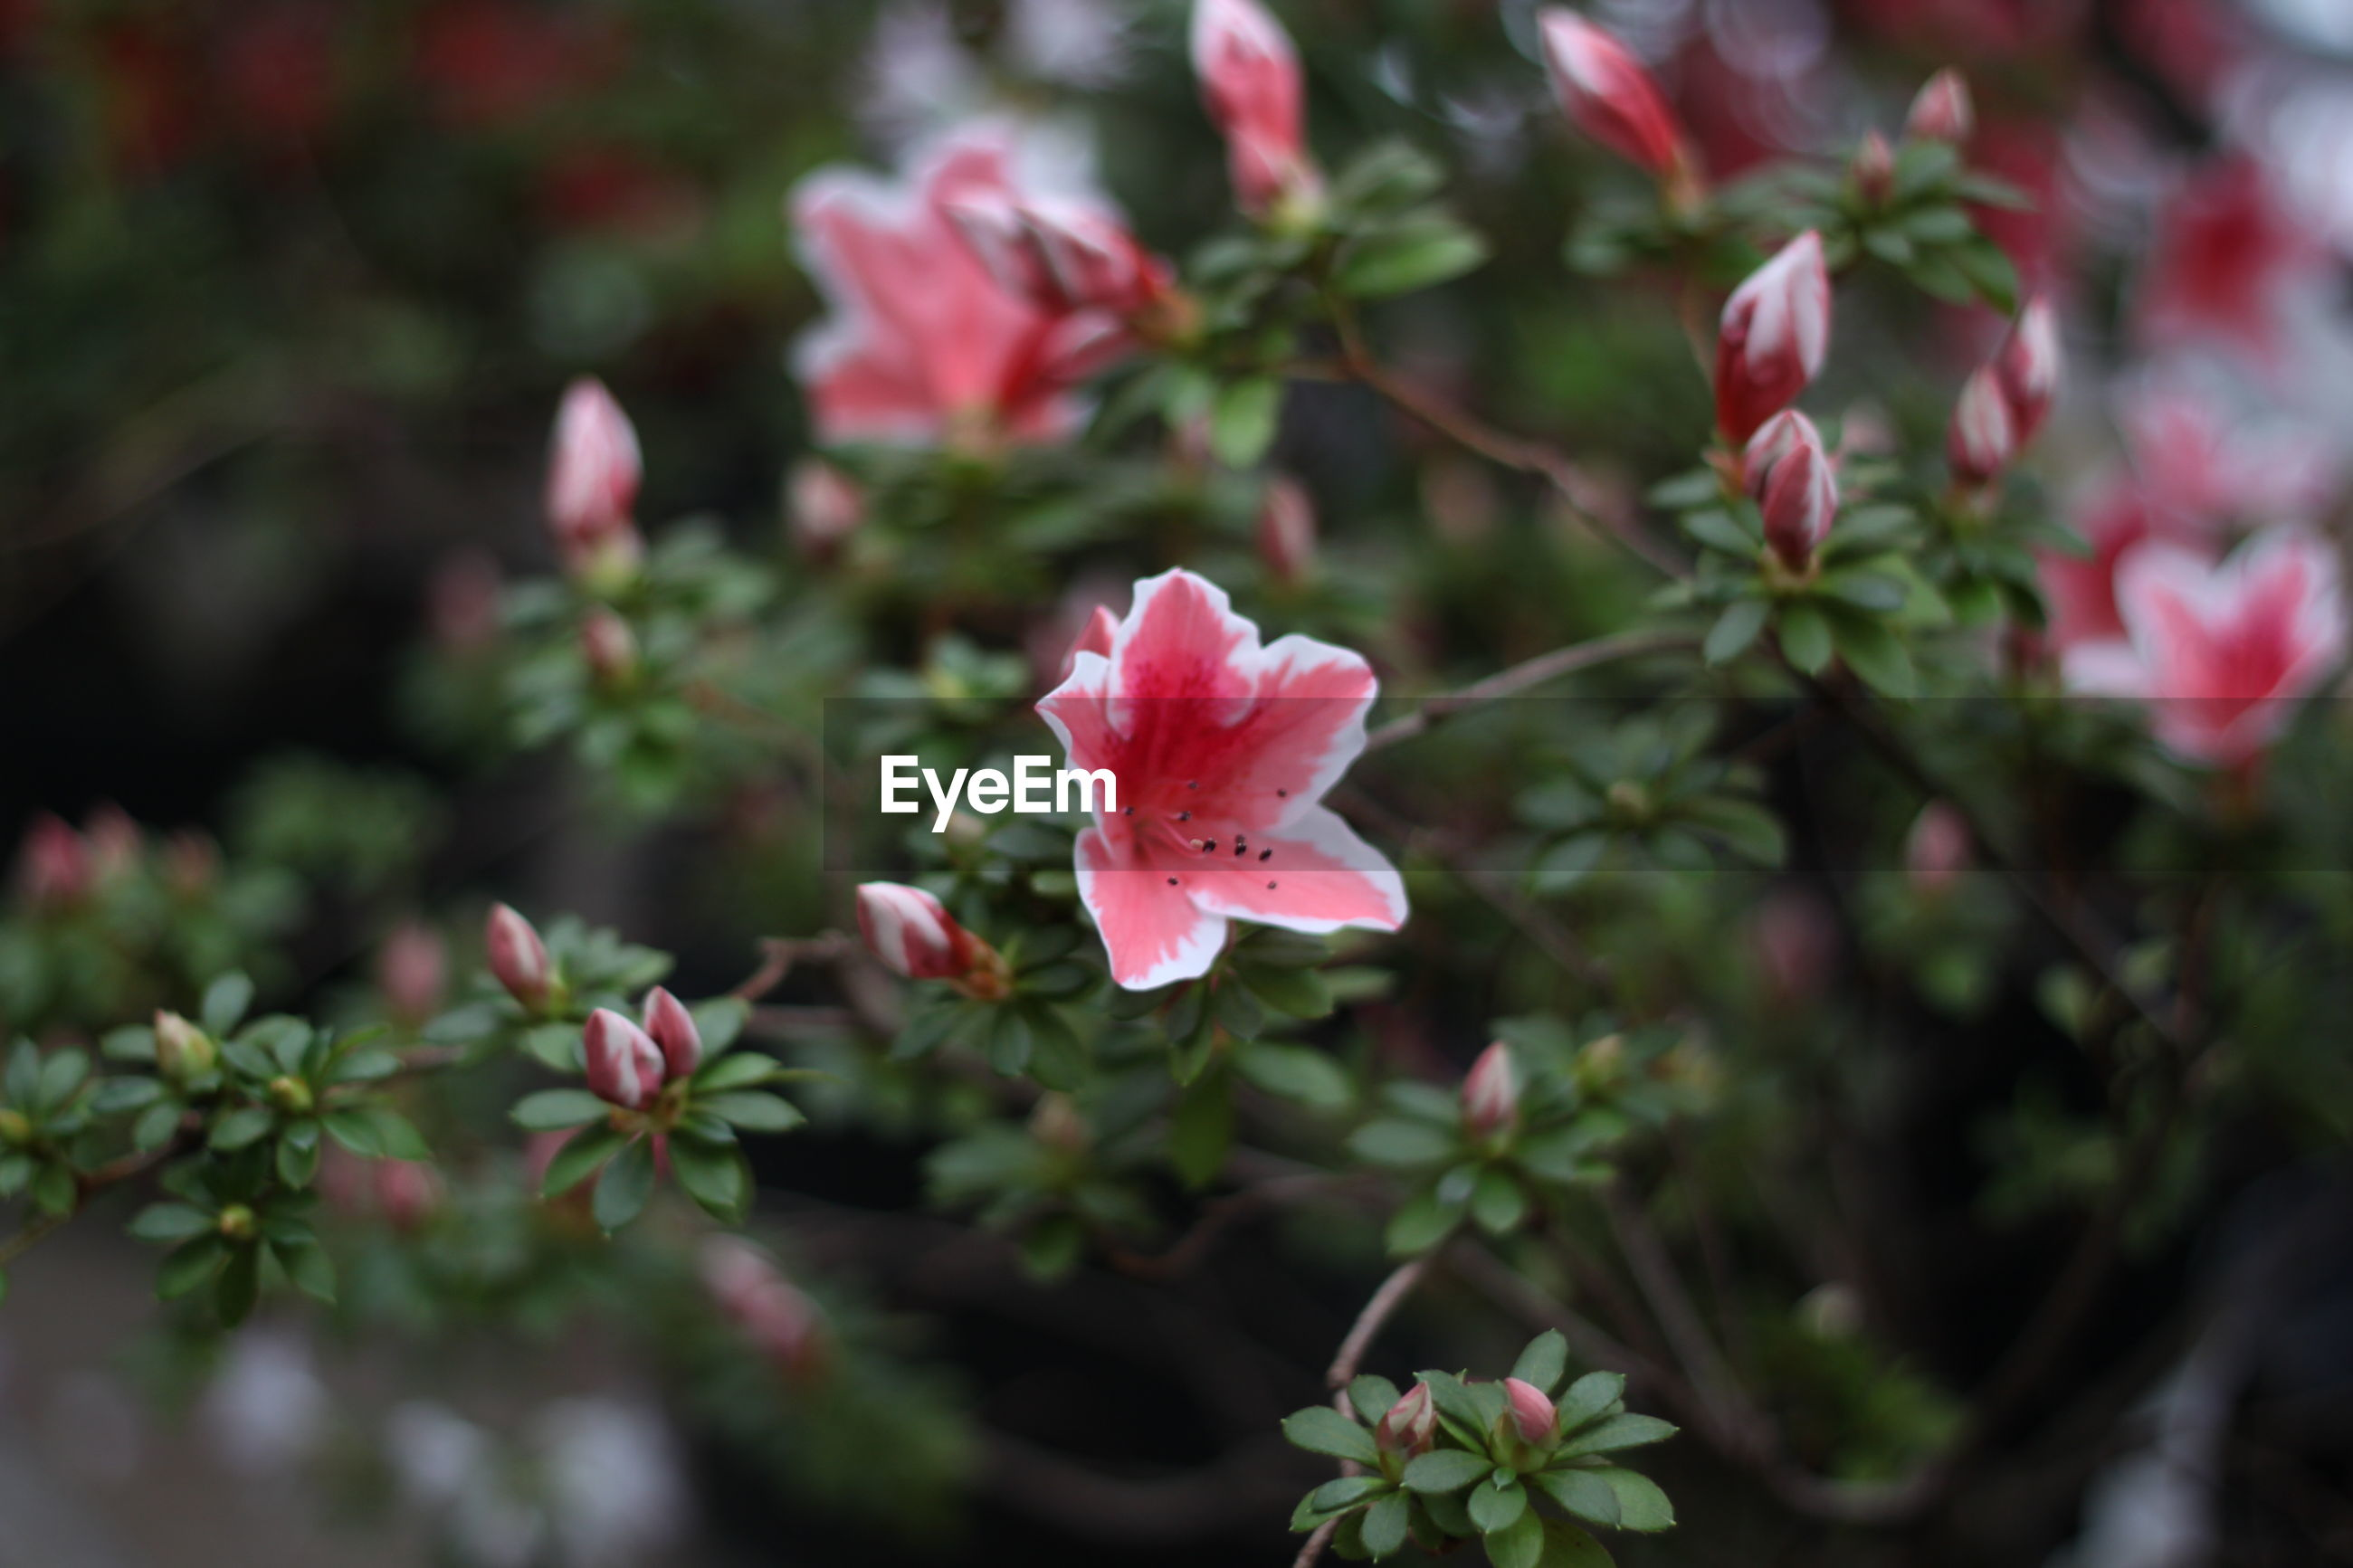 flower, growth, nature, pink color, petal, plant, beauty in nature, freshness, flower head, fragility, blooming, close-up, outdoors, no people, day, rhododendron